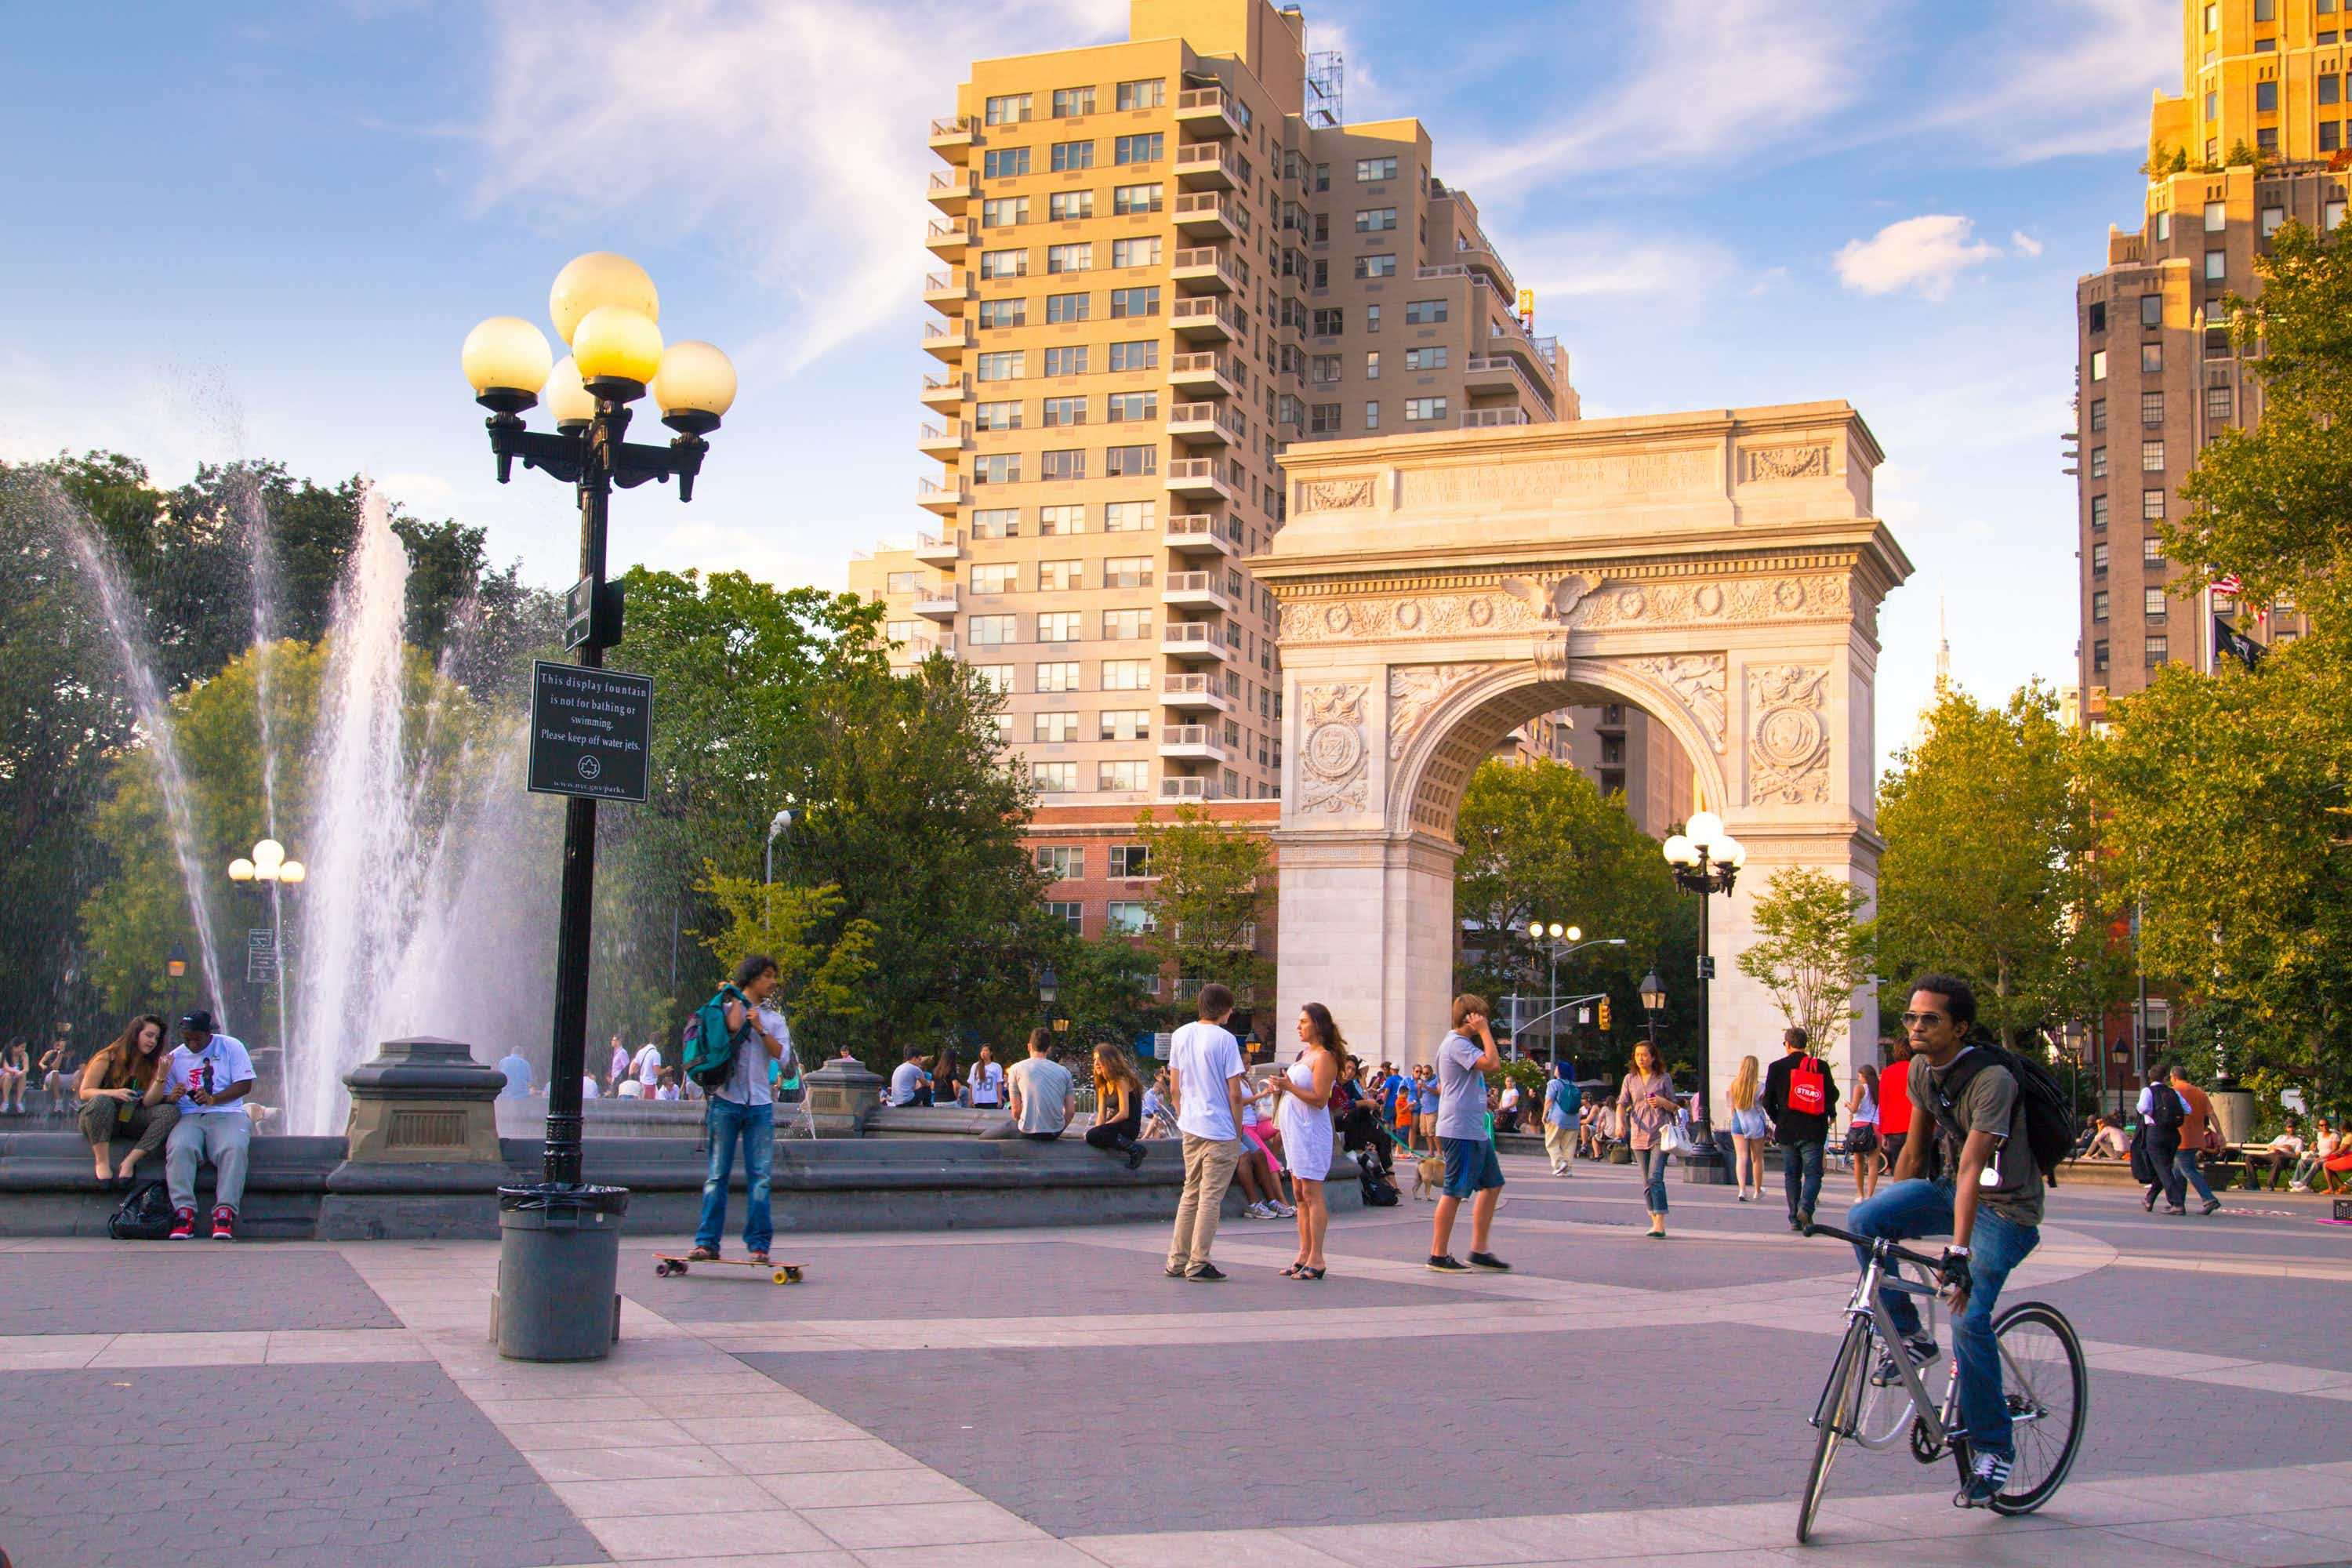 NEW YORK CITY - AUG 15:  Summer evening at Washington Square Park in Manhattan on Aug 15, 2013.  Washington Square Park is a 9.75 acre park located in Greenwich Village and is a popular meeting spot.